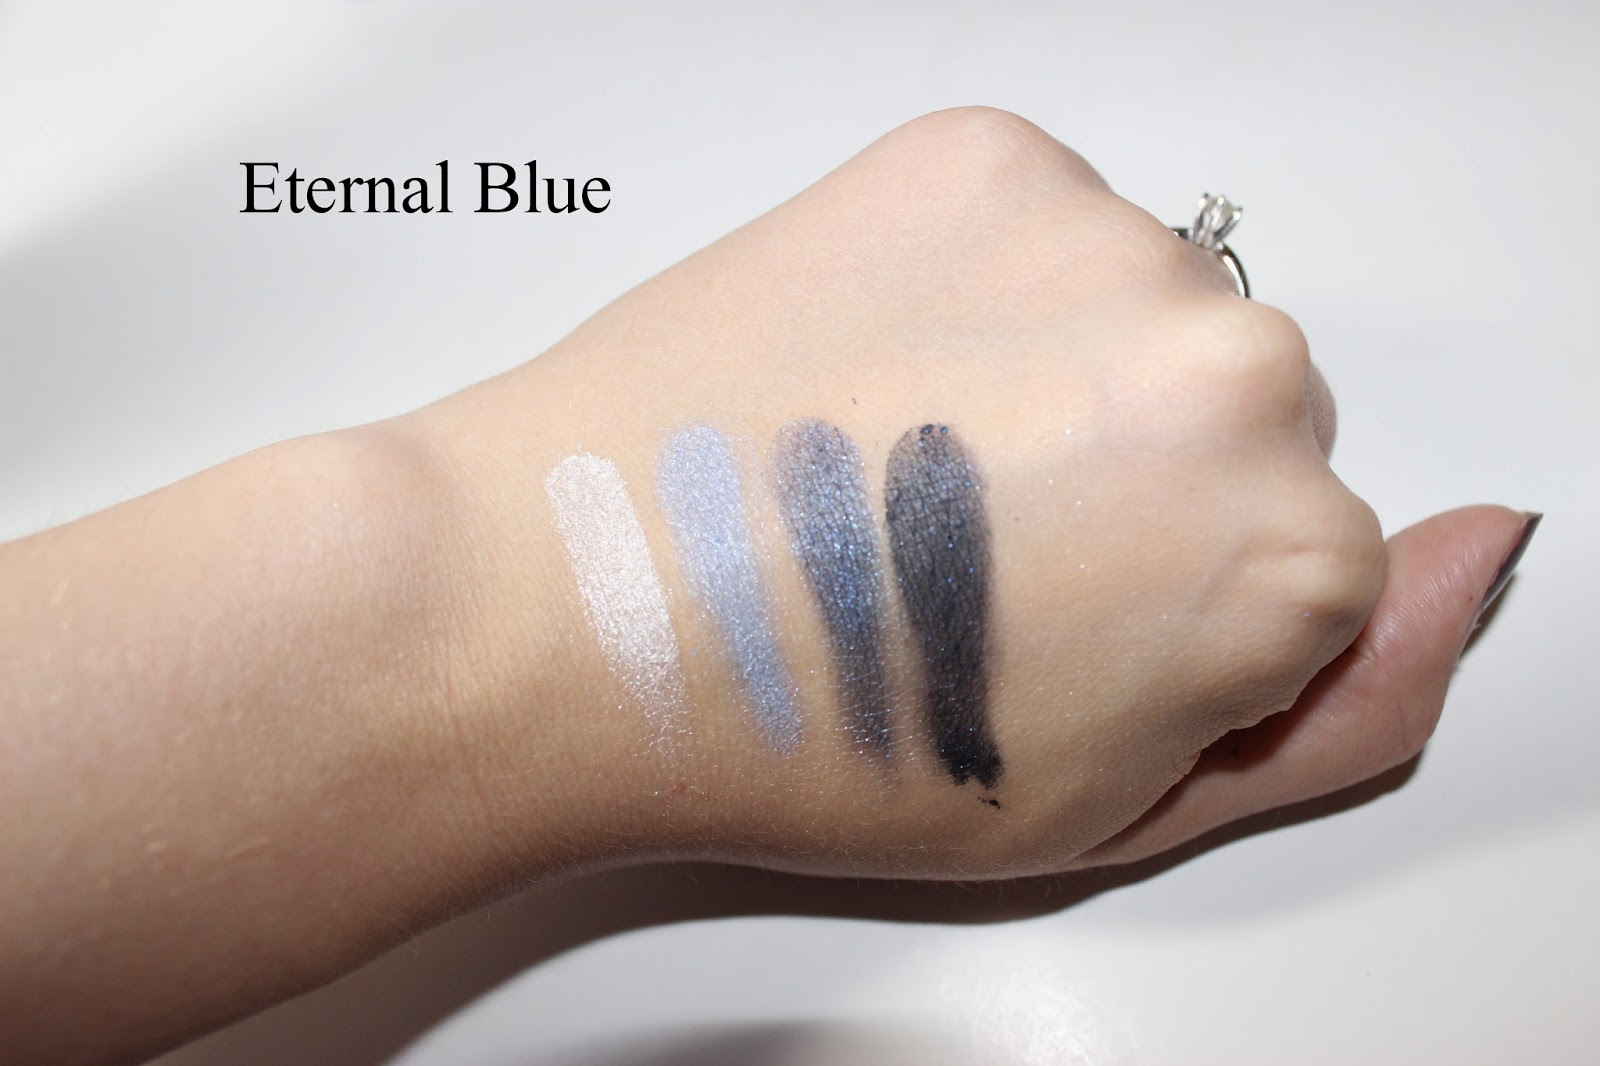 L'Oréal Colour Riche Wet Eyeshadow in Eternal Blue Swatches